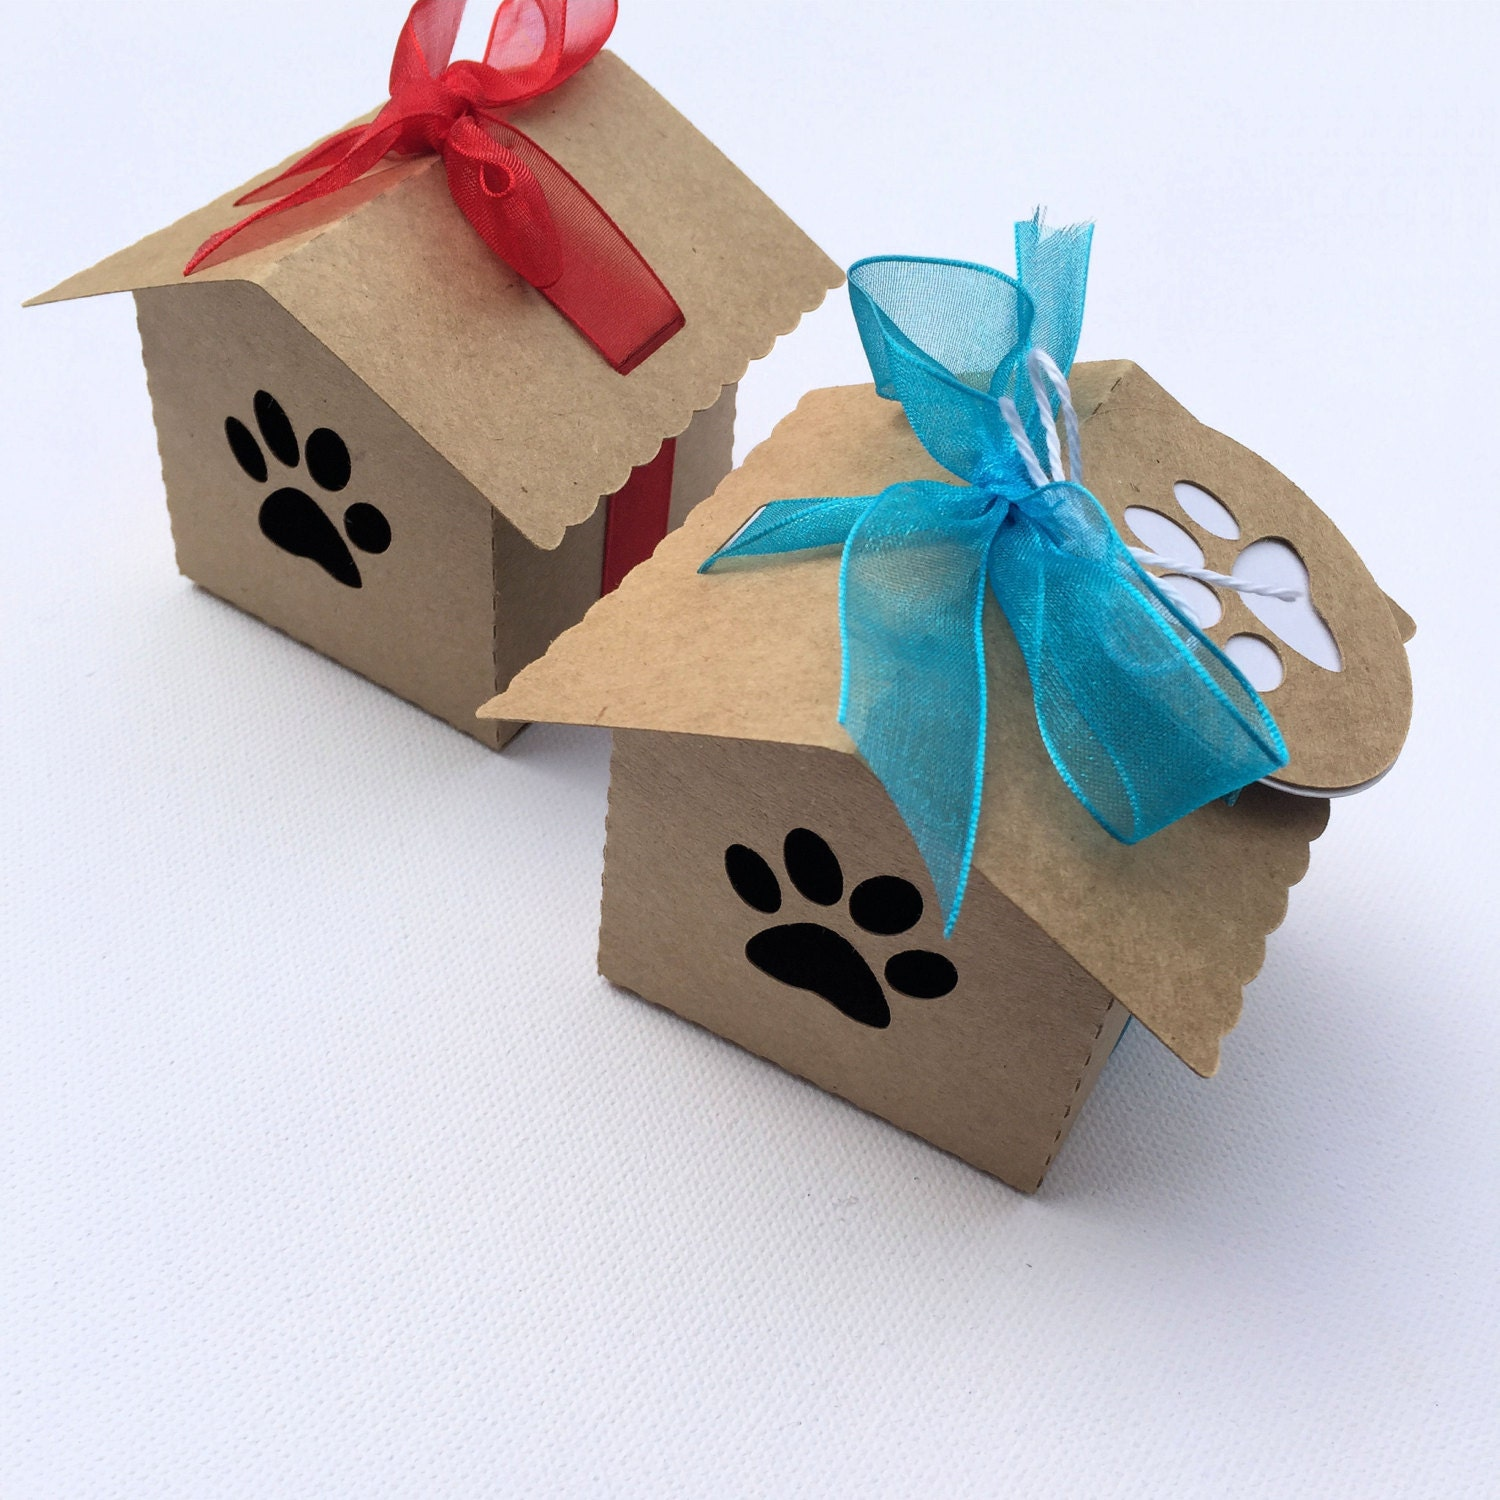 Kraft dog paw dog house gift boxes party favors. Pet lover